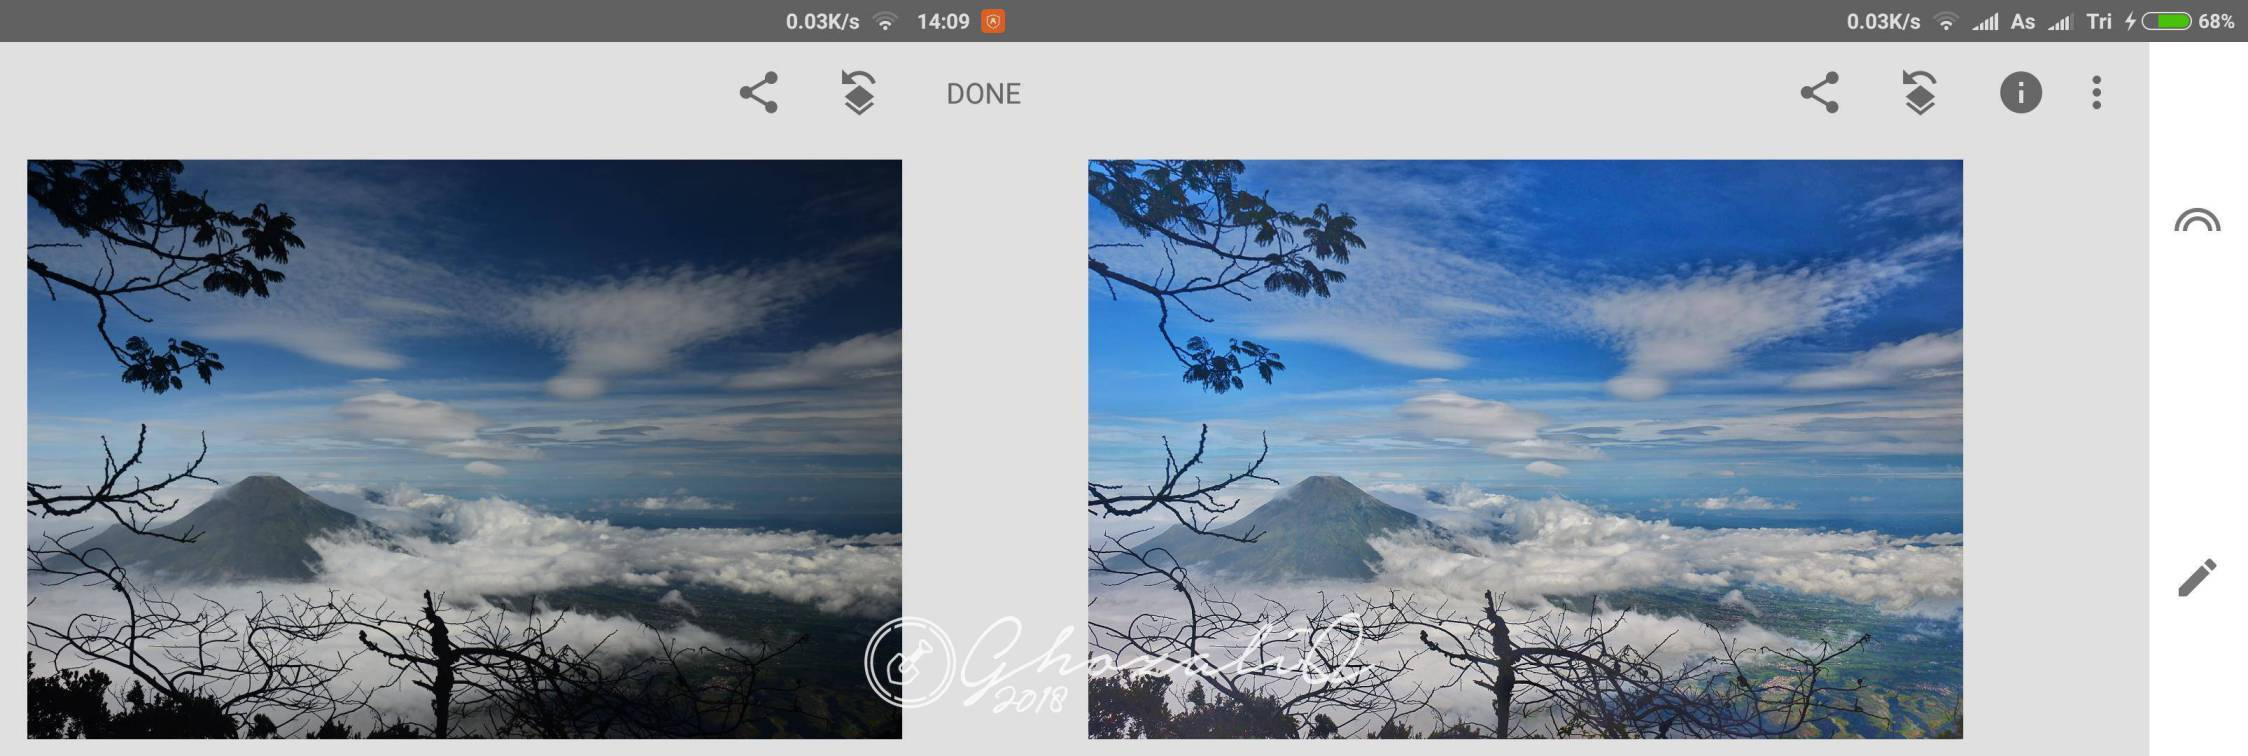 Edit foto landscape di snapseed android